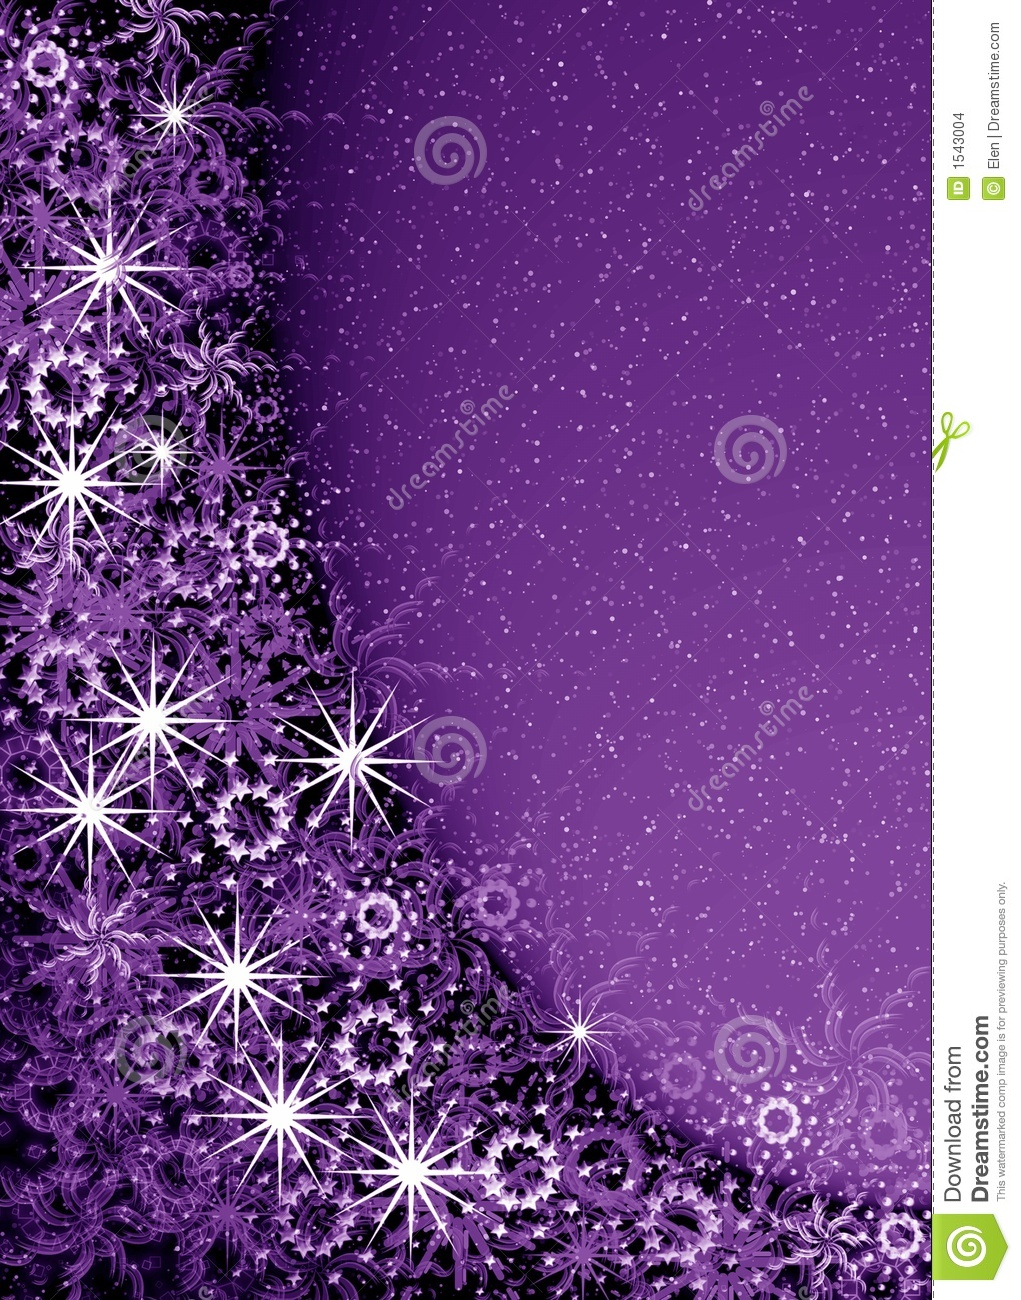 Christmas Violet Magic Frame Stock Illustration - Illustration of ...